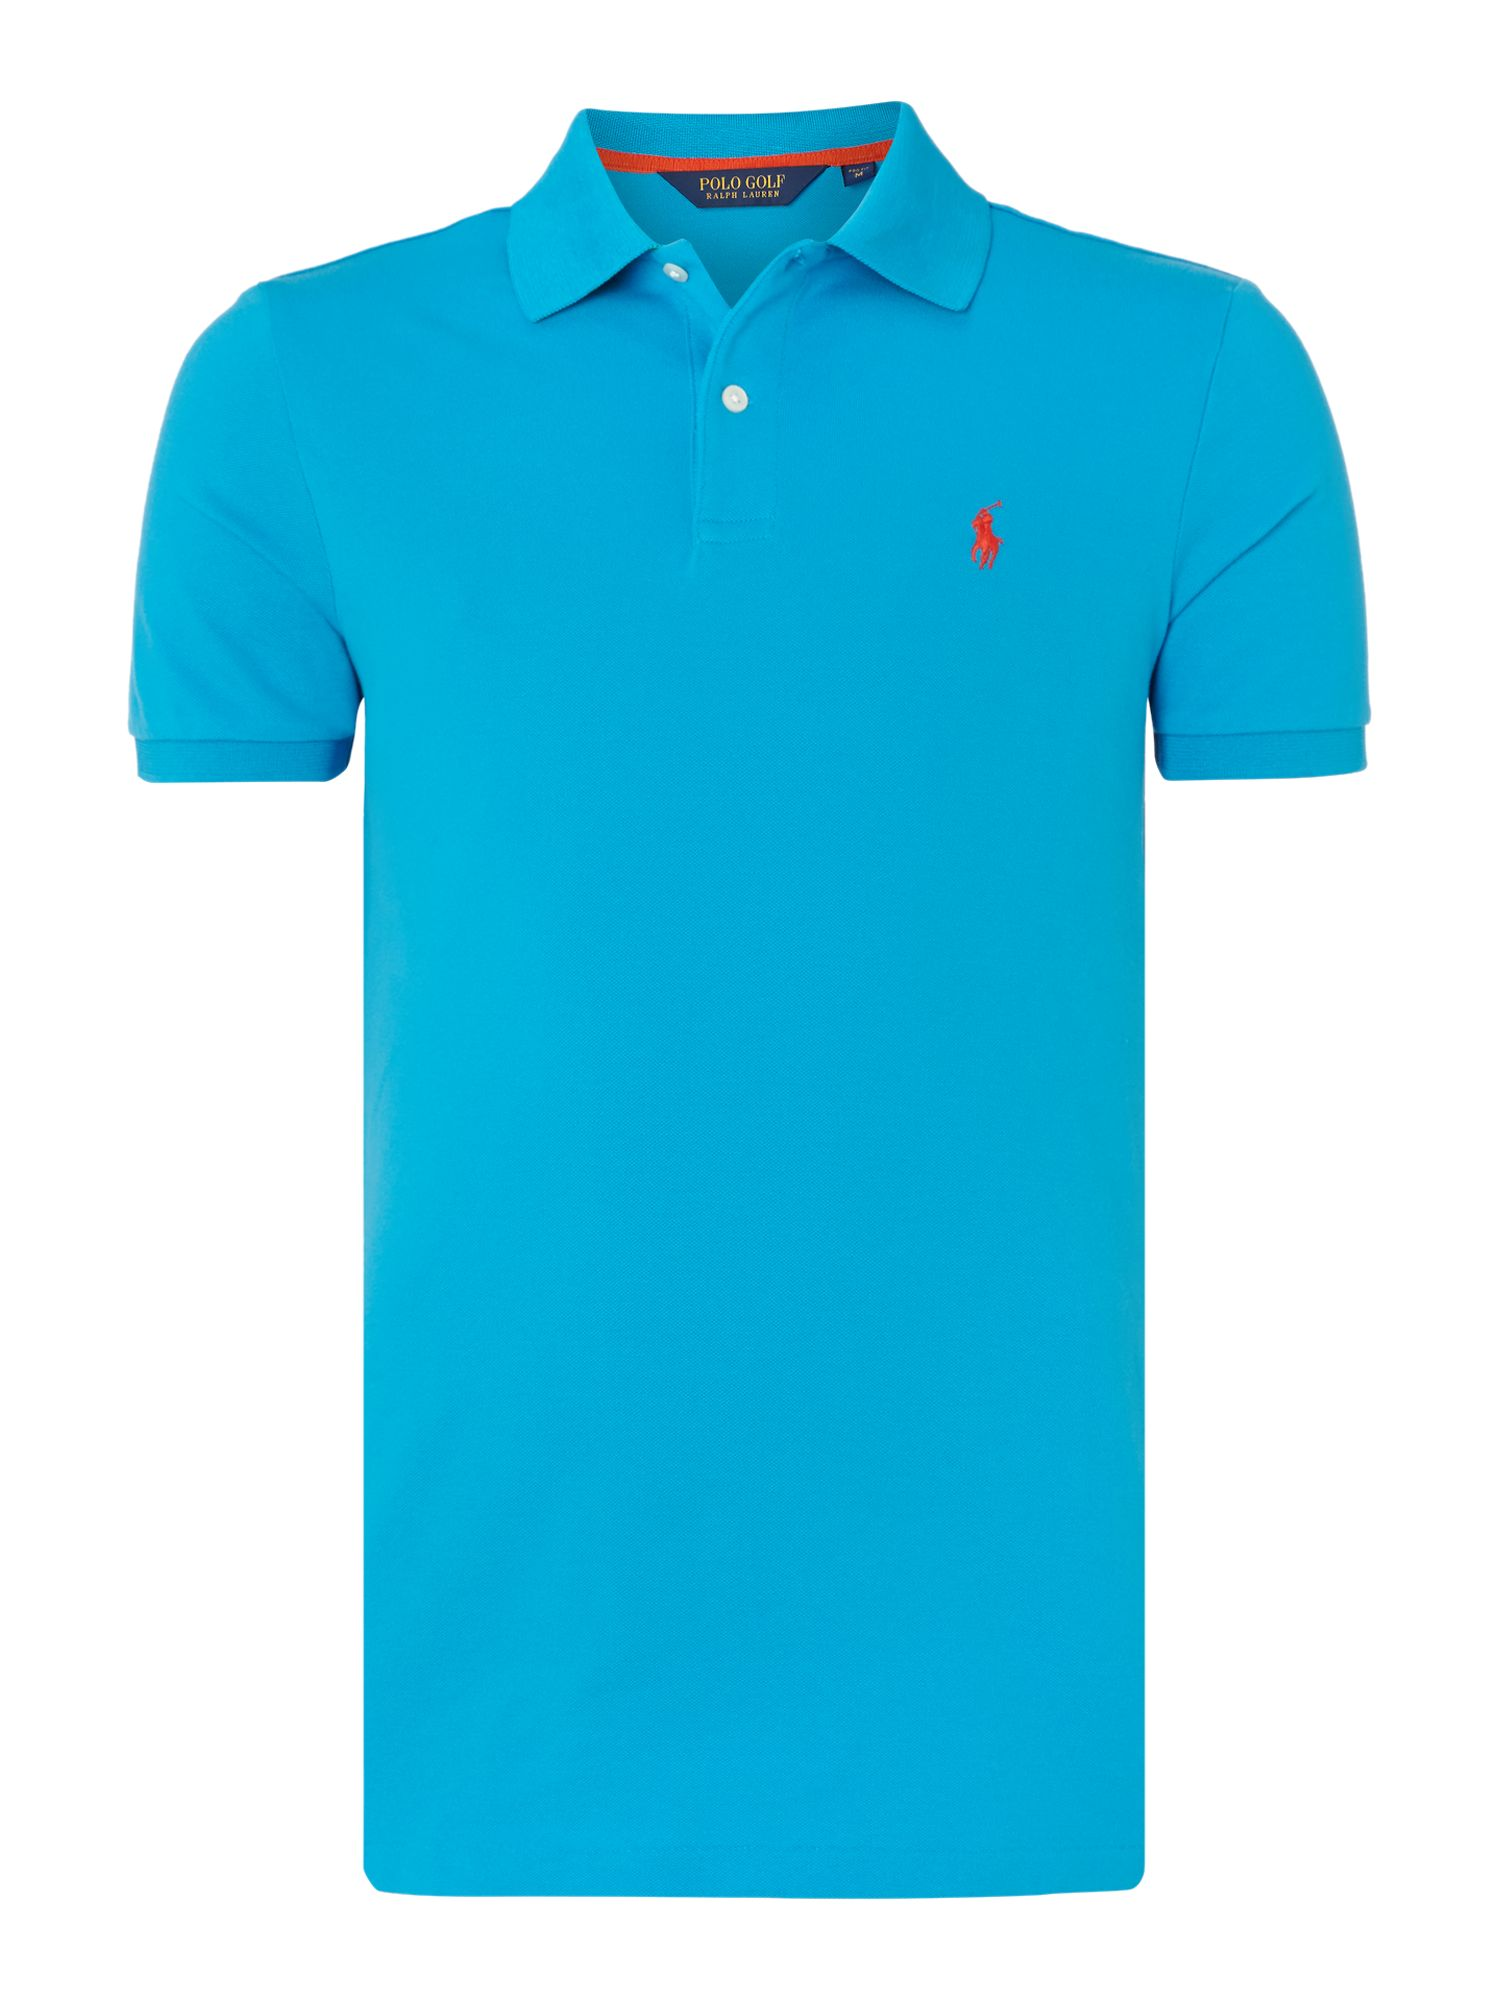 Men's Polo Ralph Lauren Golf Pro-Fit Polo Shirt